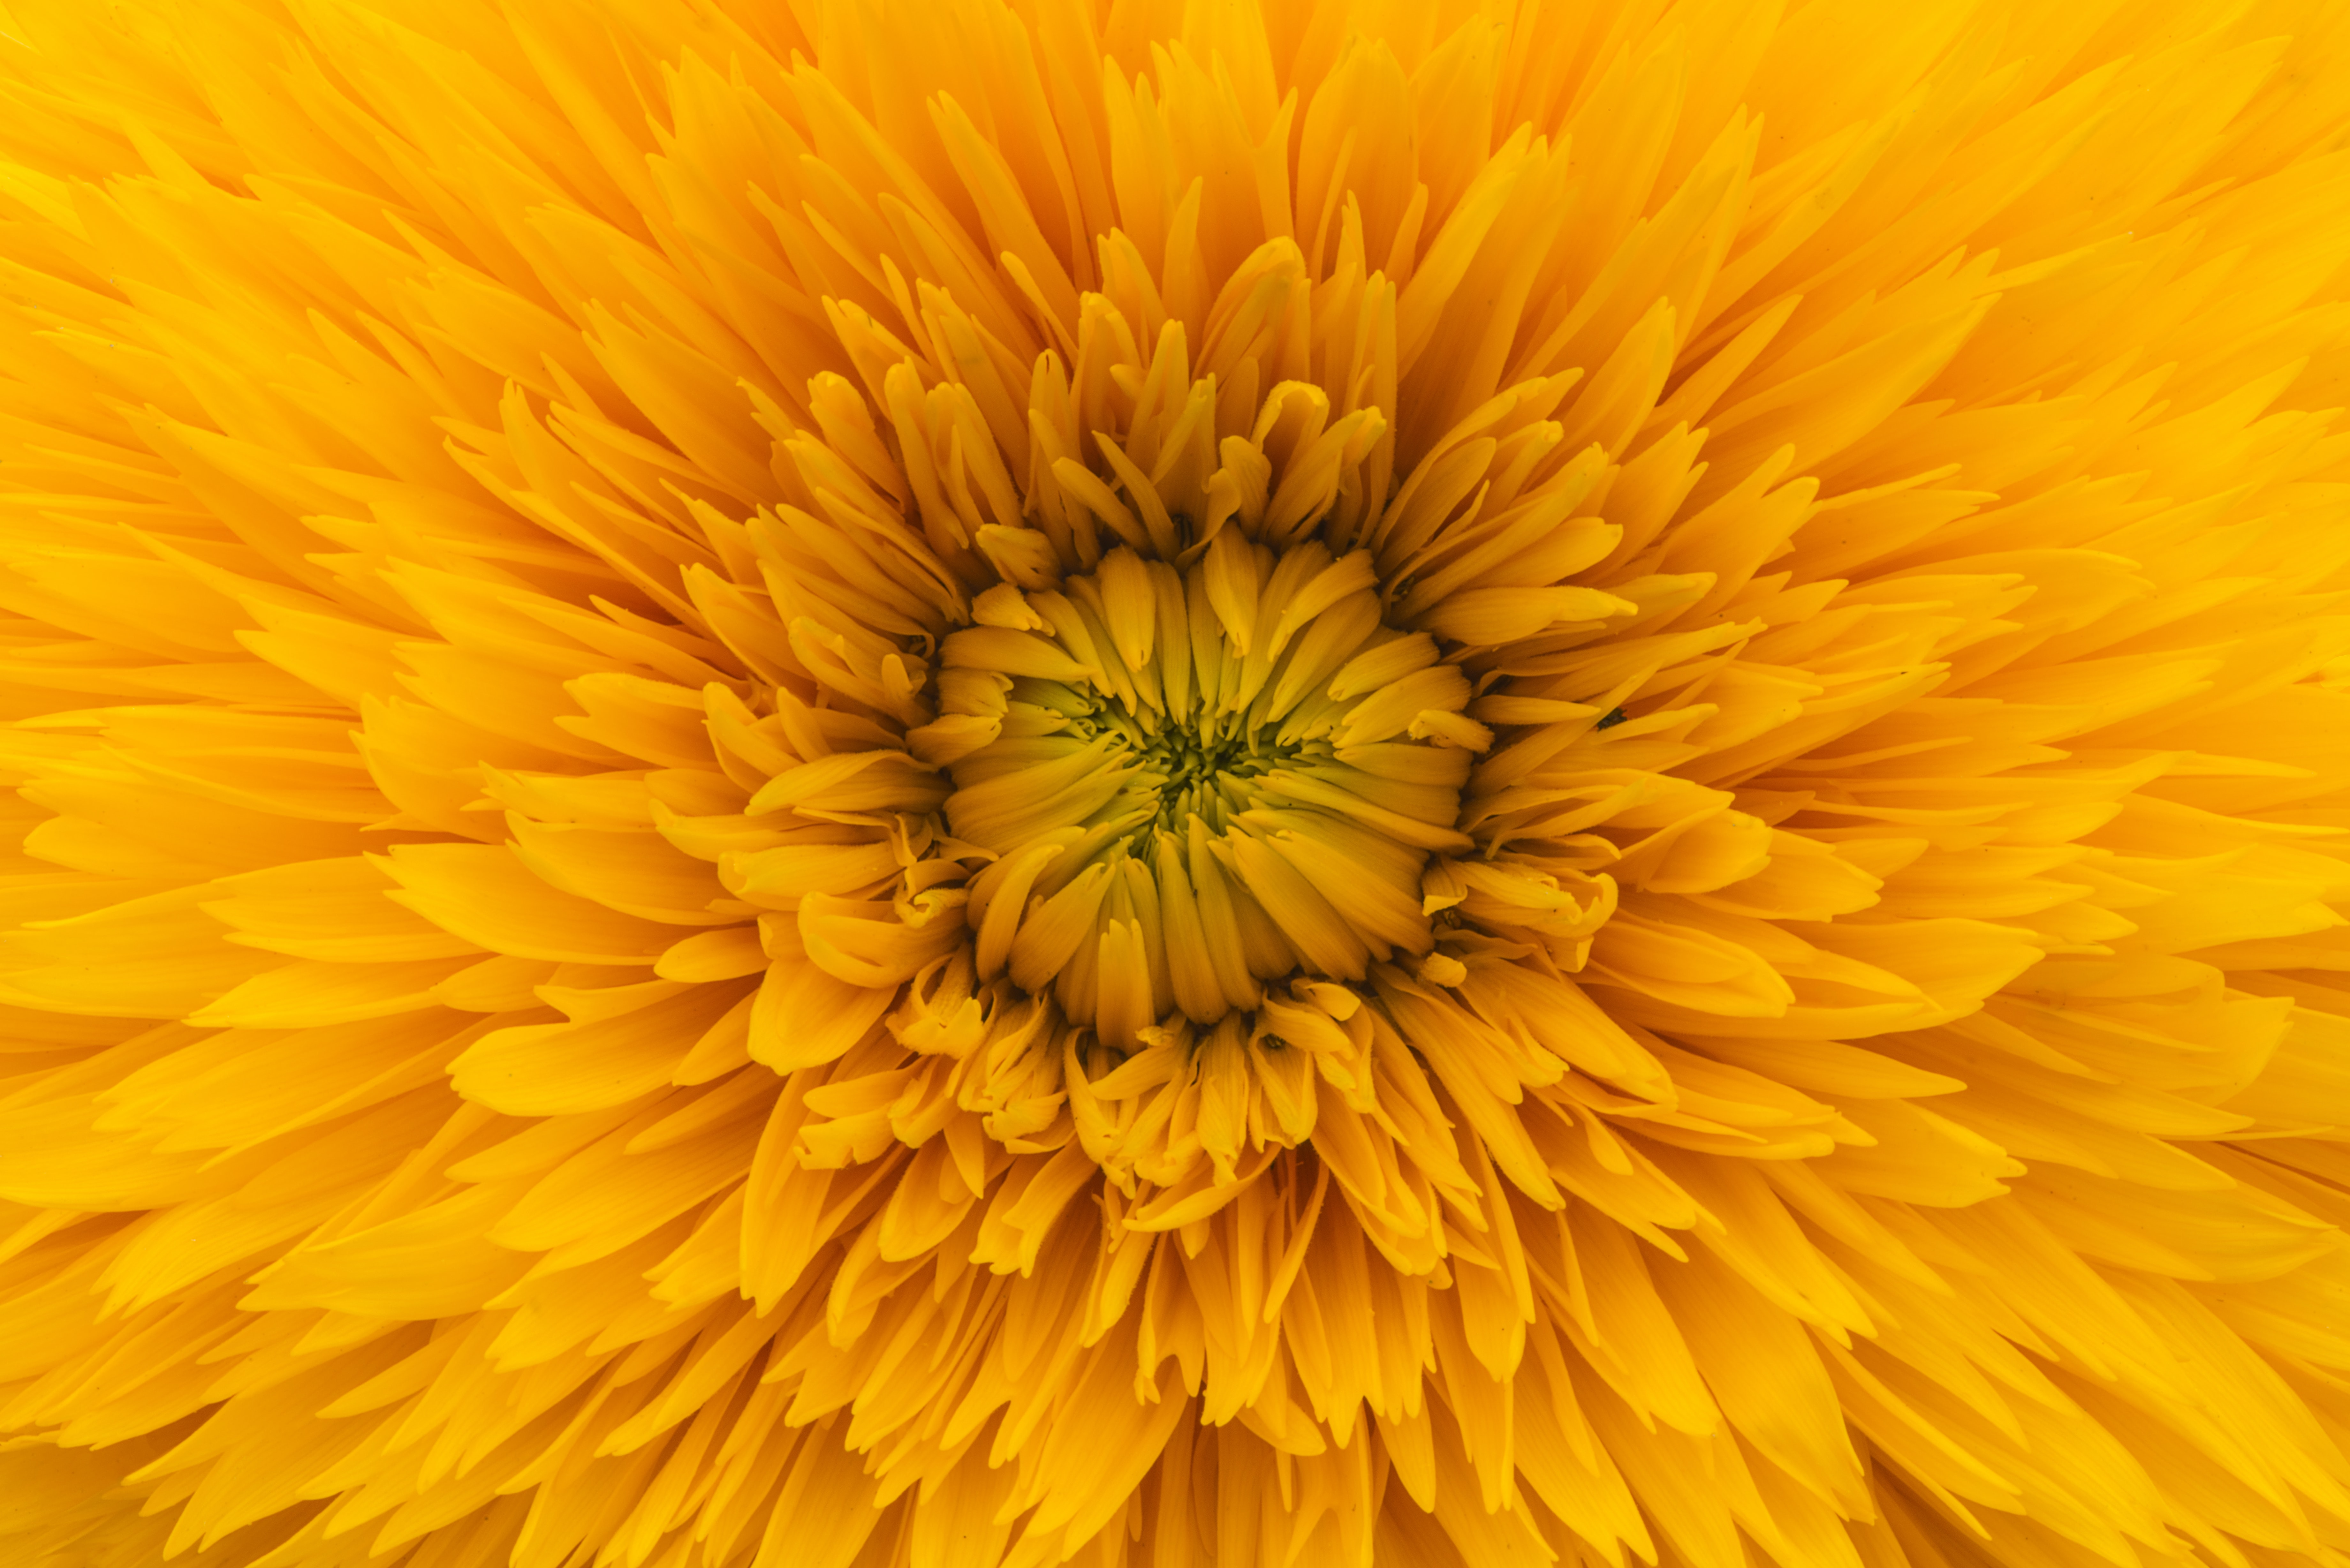 A macro shot of the golden center of a flower with numerous yellow petals around